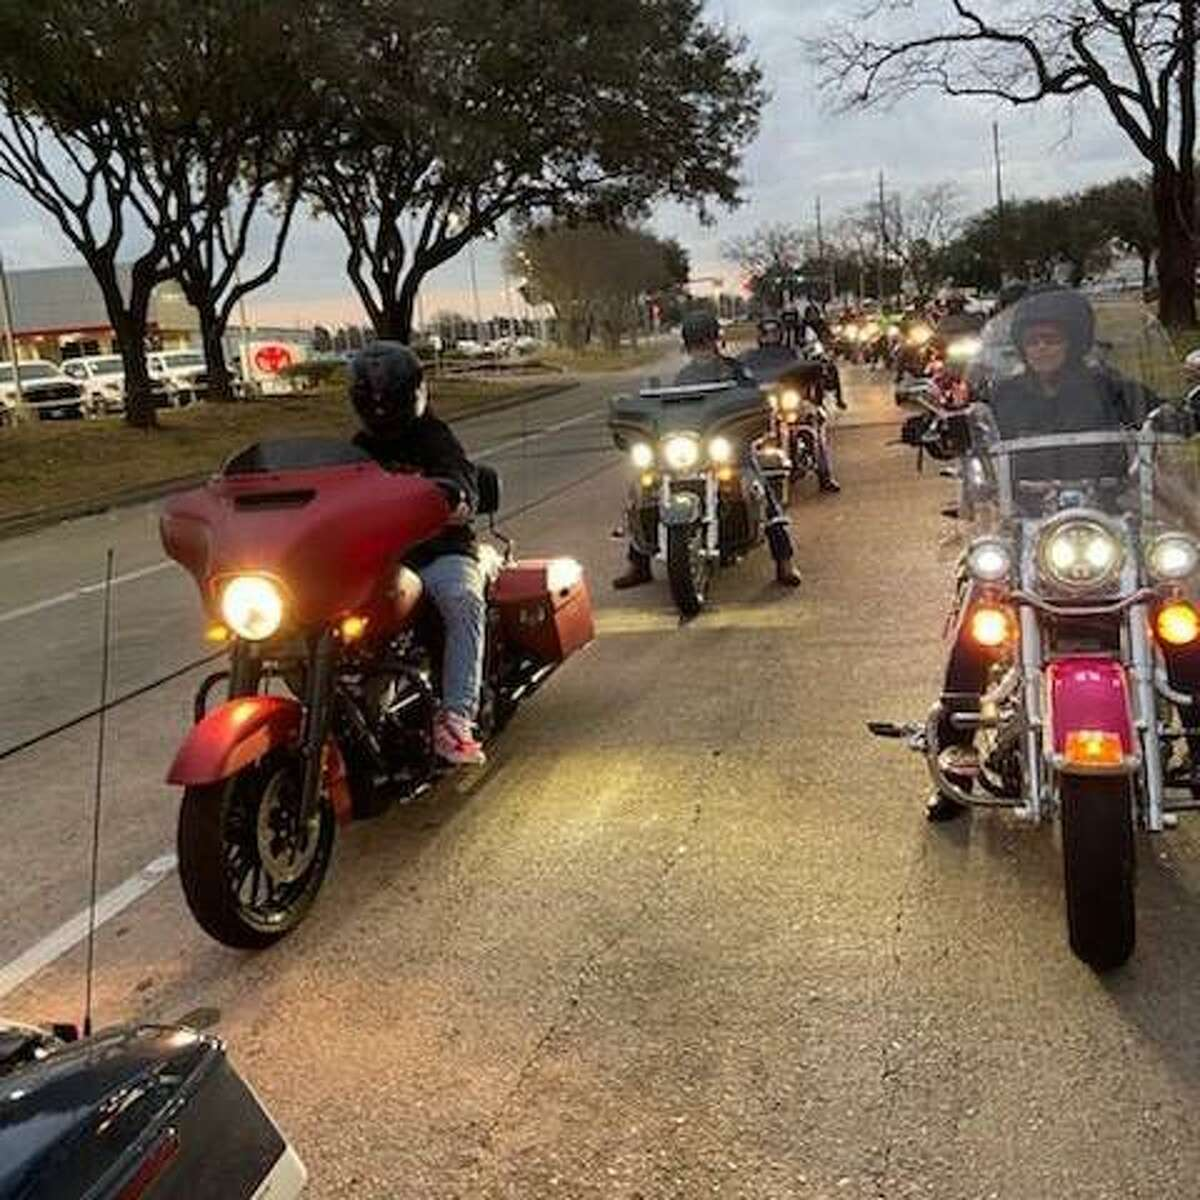 """The inaugural """"Ride for Re-entry"""" on Saturday, Oct. 23, will support the work of CrossWalk Center, a Houston-based nonprofit focused on breaking the cycle of recidivism."""